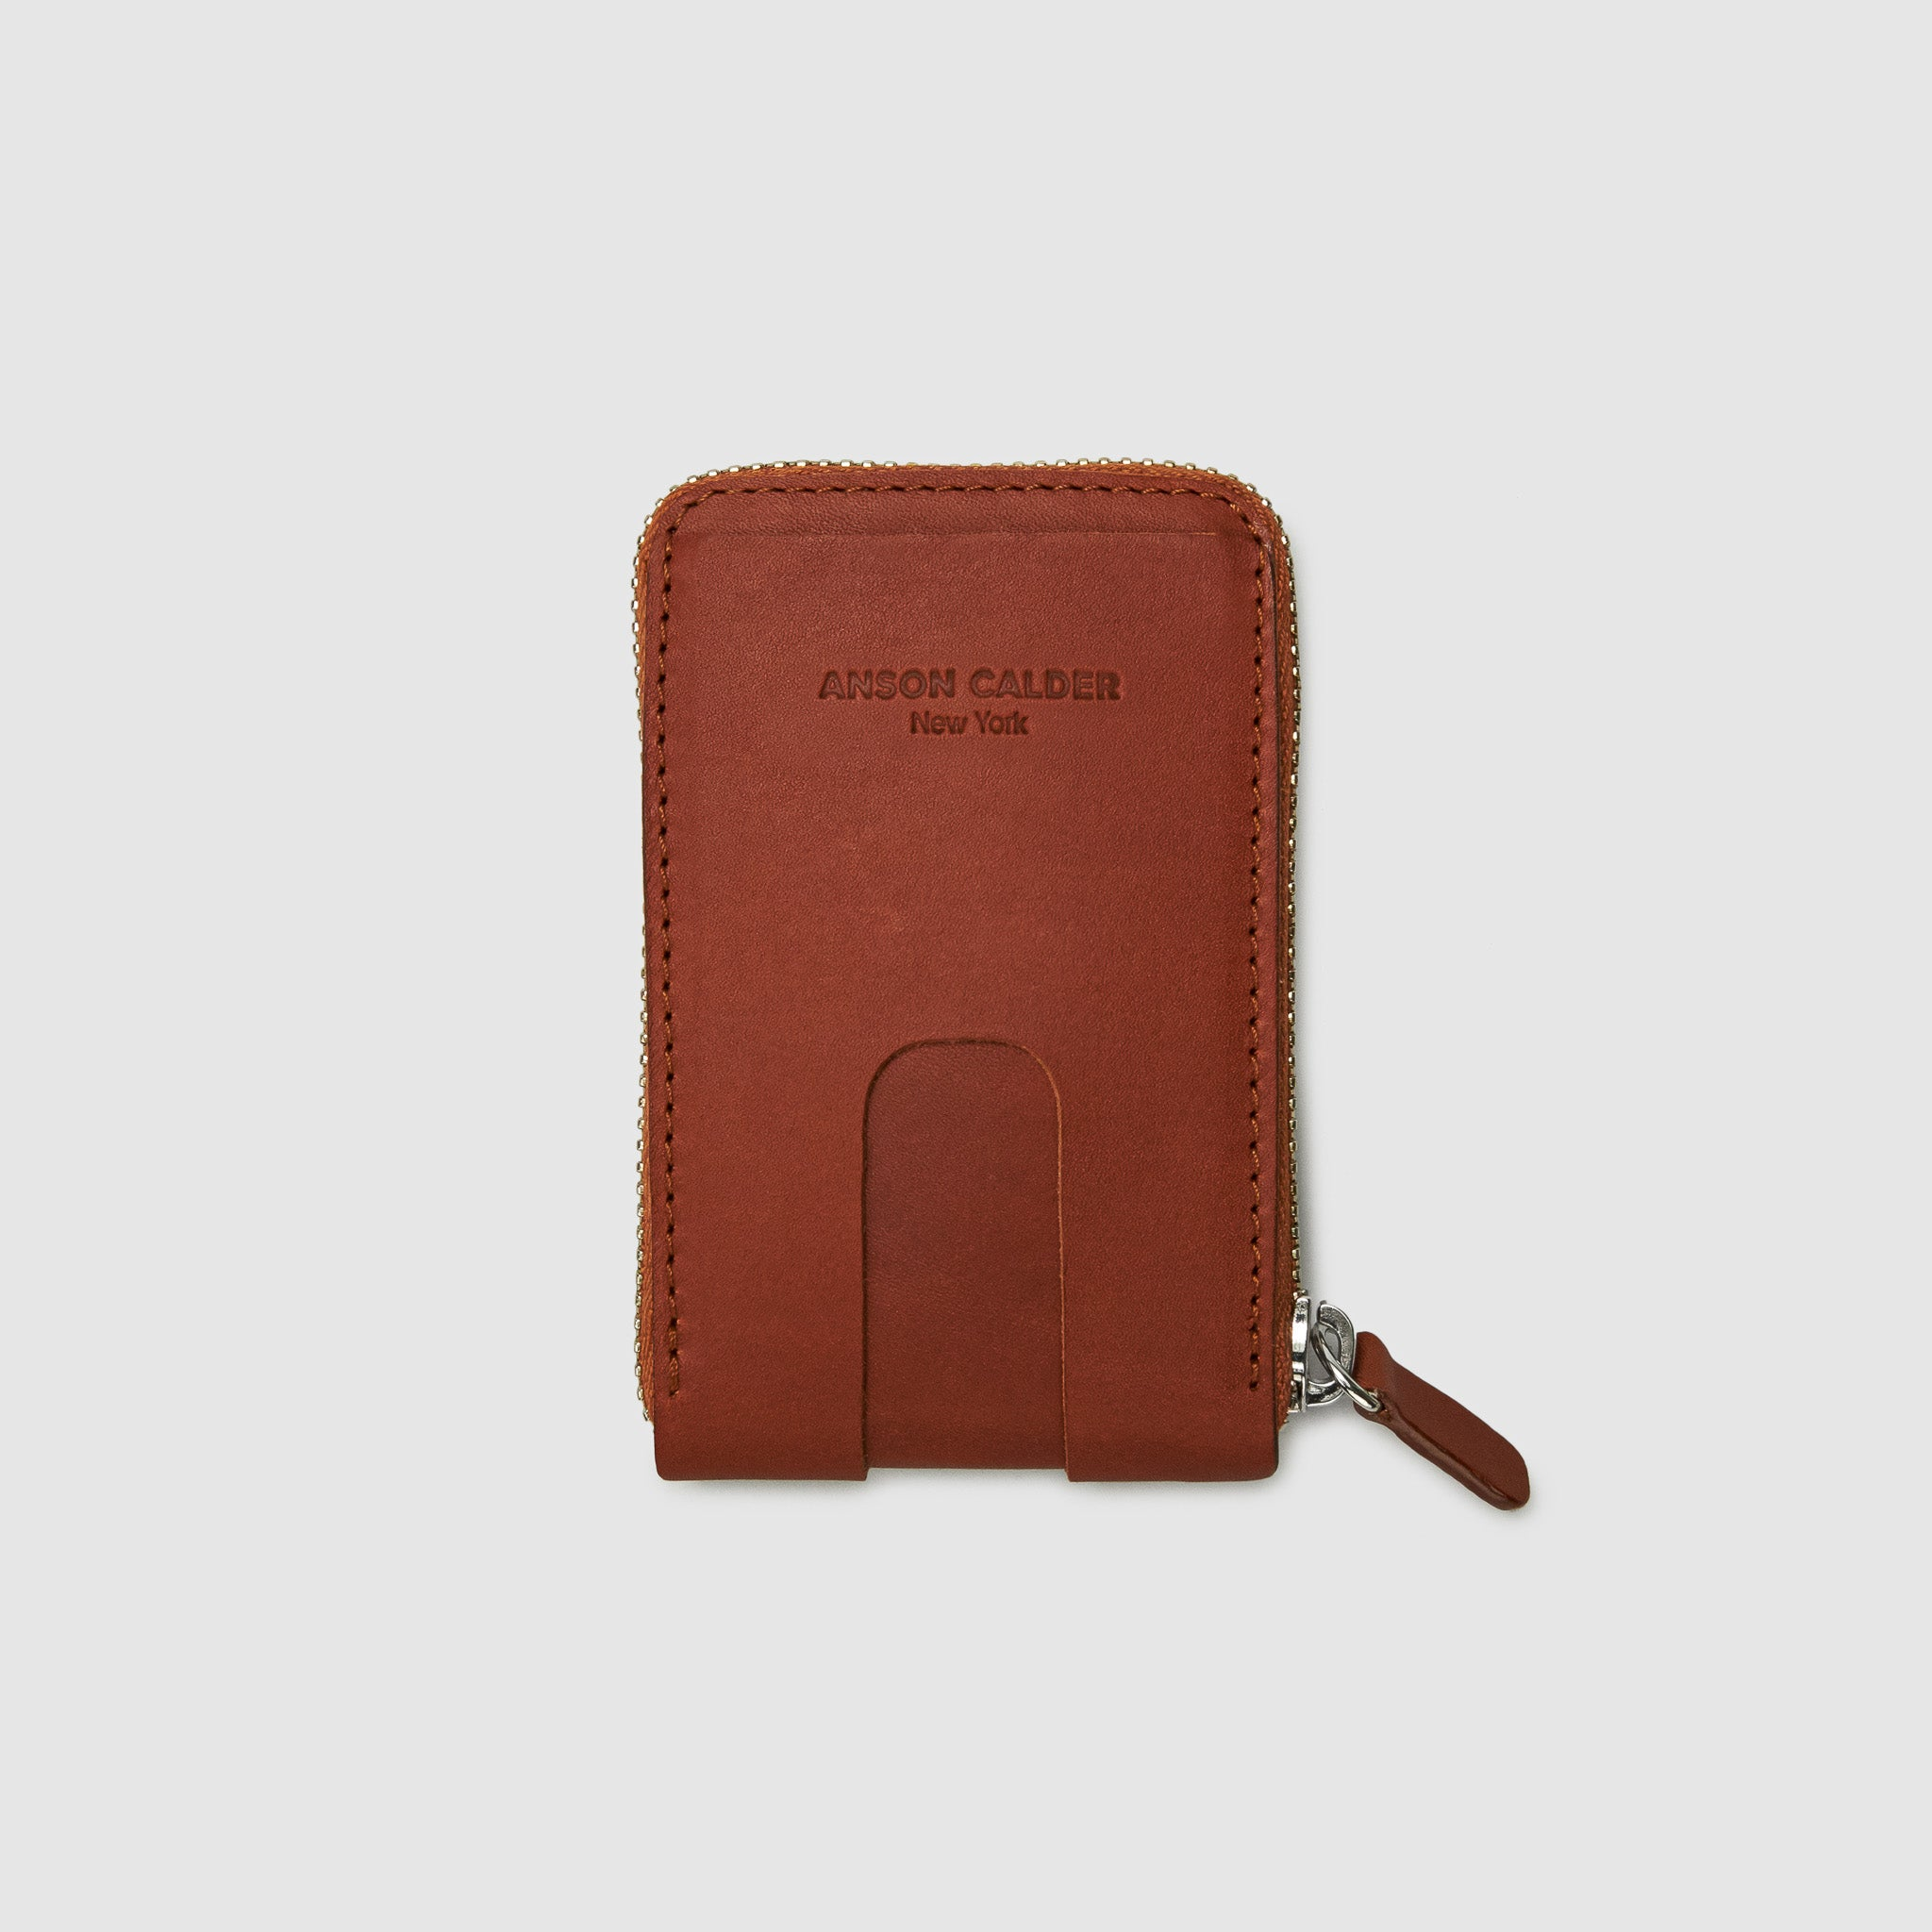 Anson Calder zip-around Wallet with zipper and pockets RFID french calfskin leather _cognac